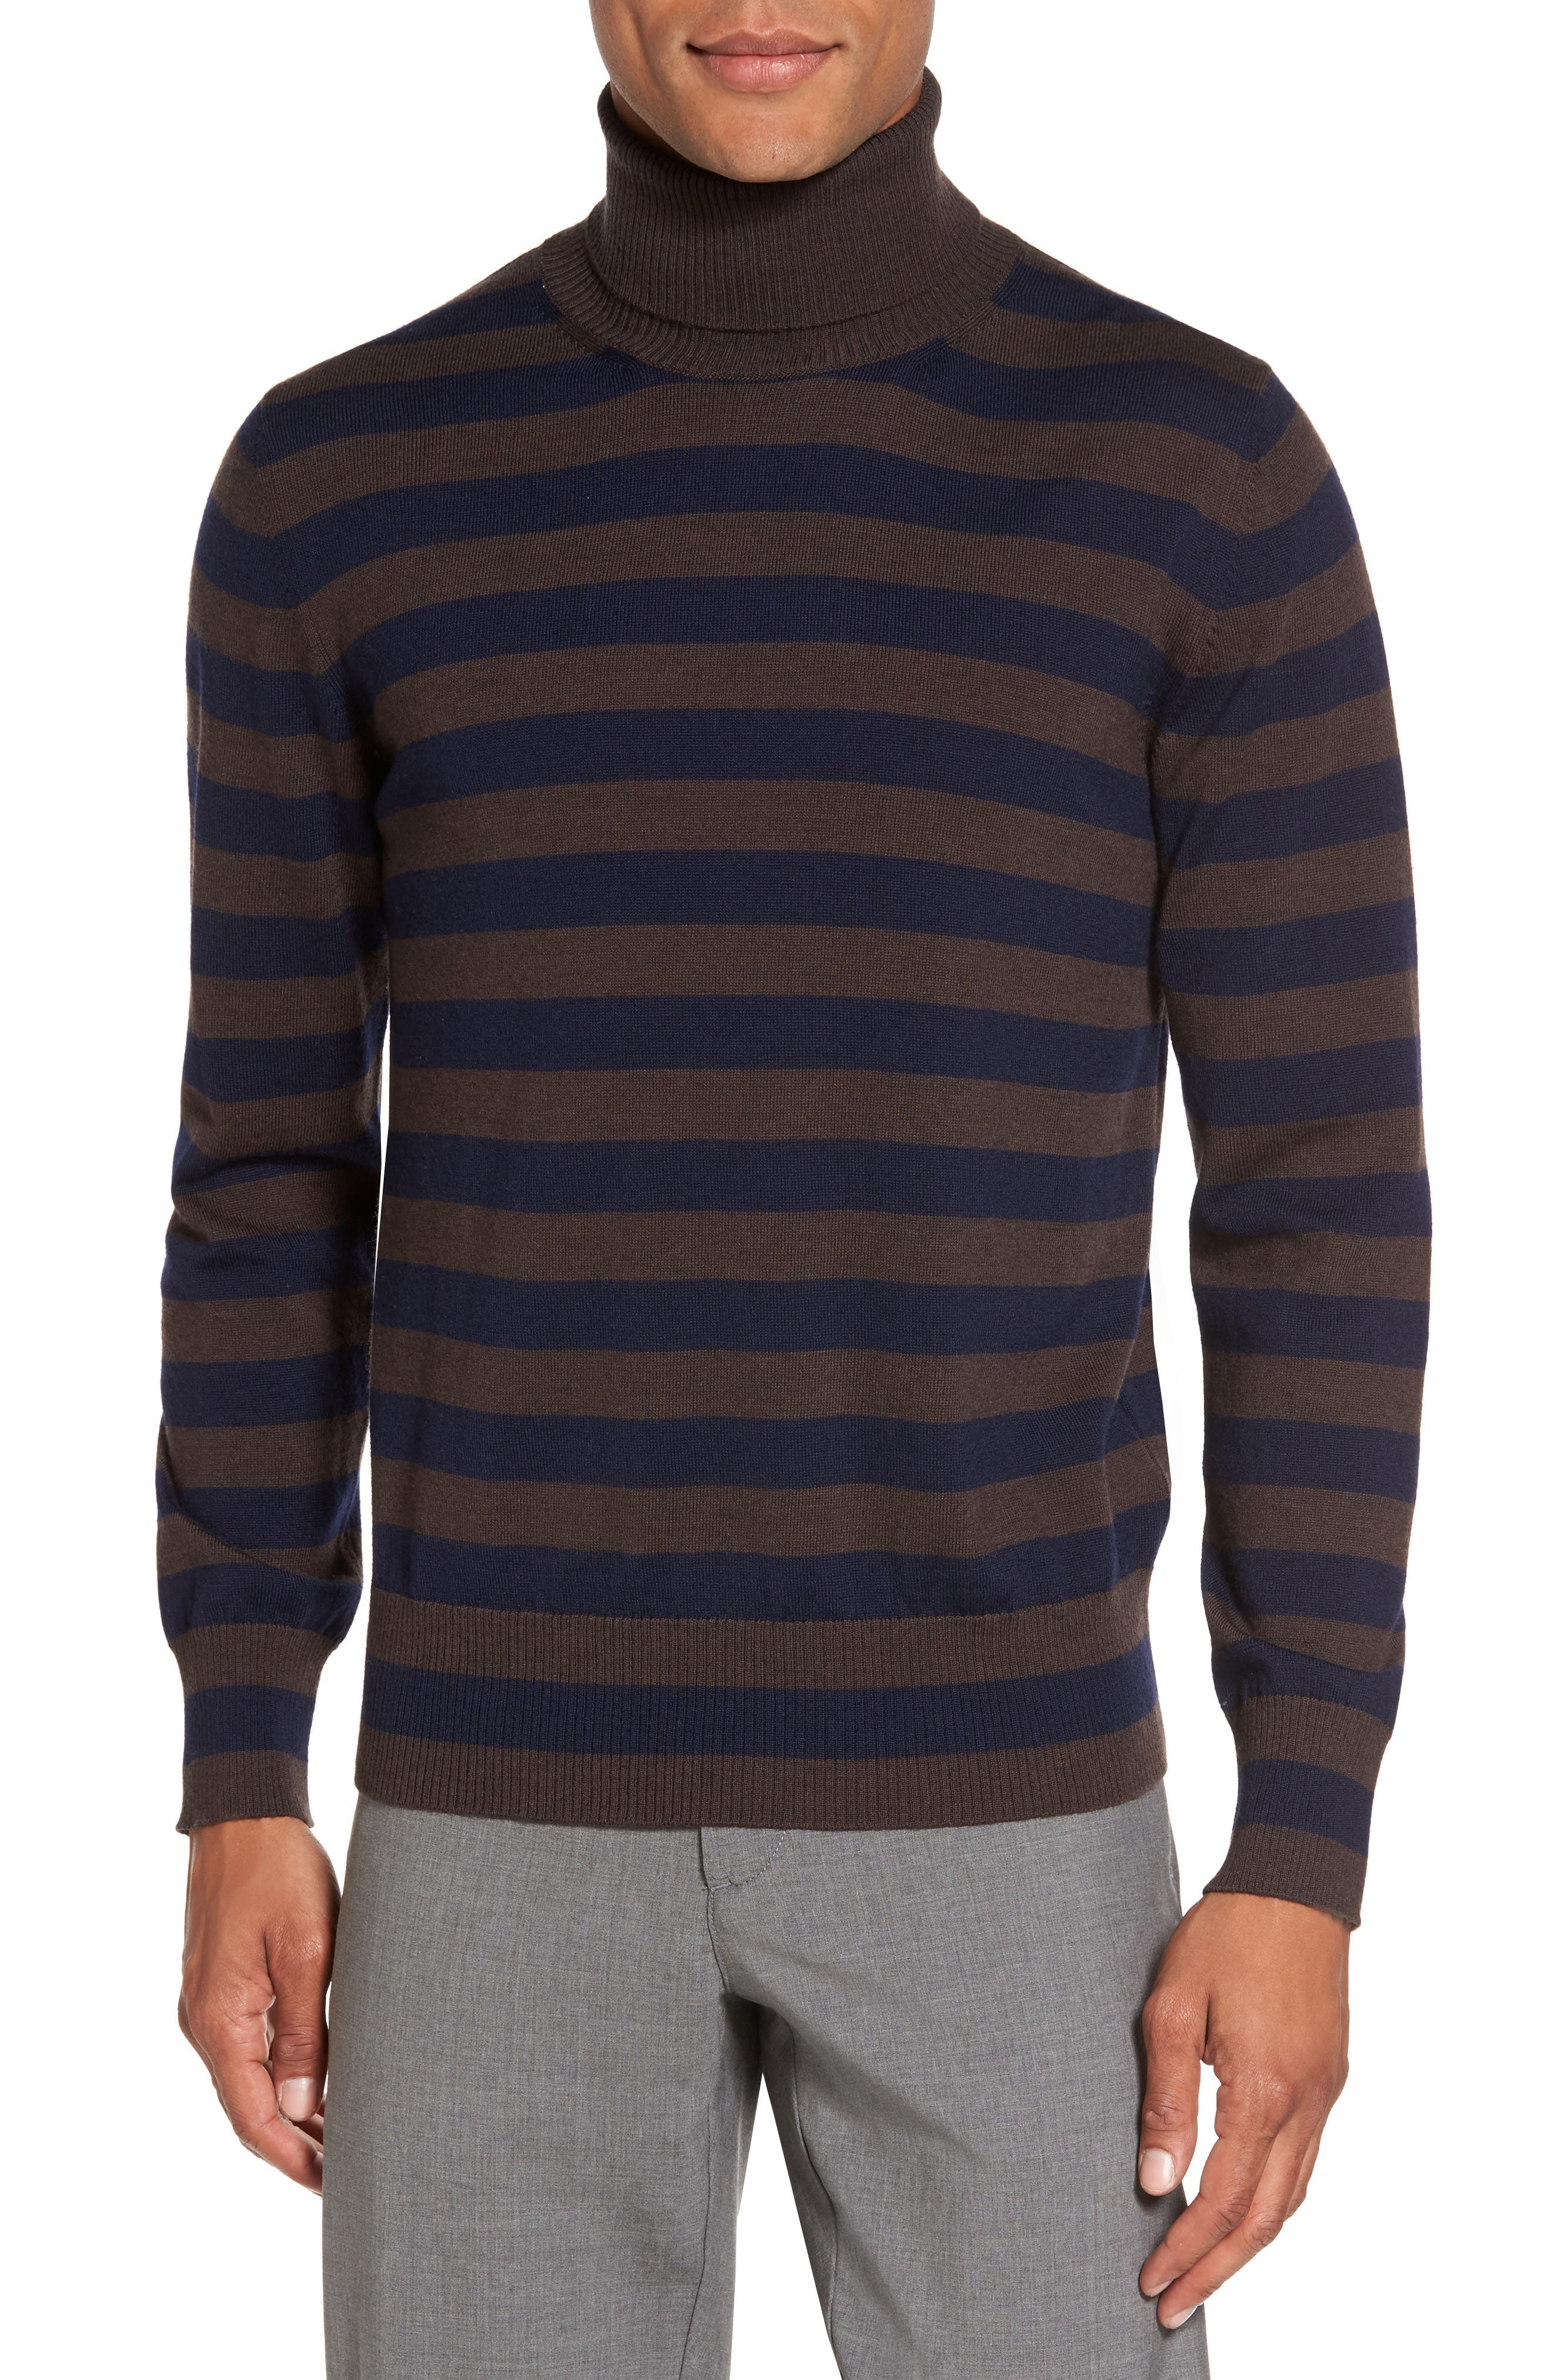 Striped Turtleneck Sweater,                             Main thumbnail 1, color,                             204